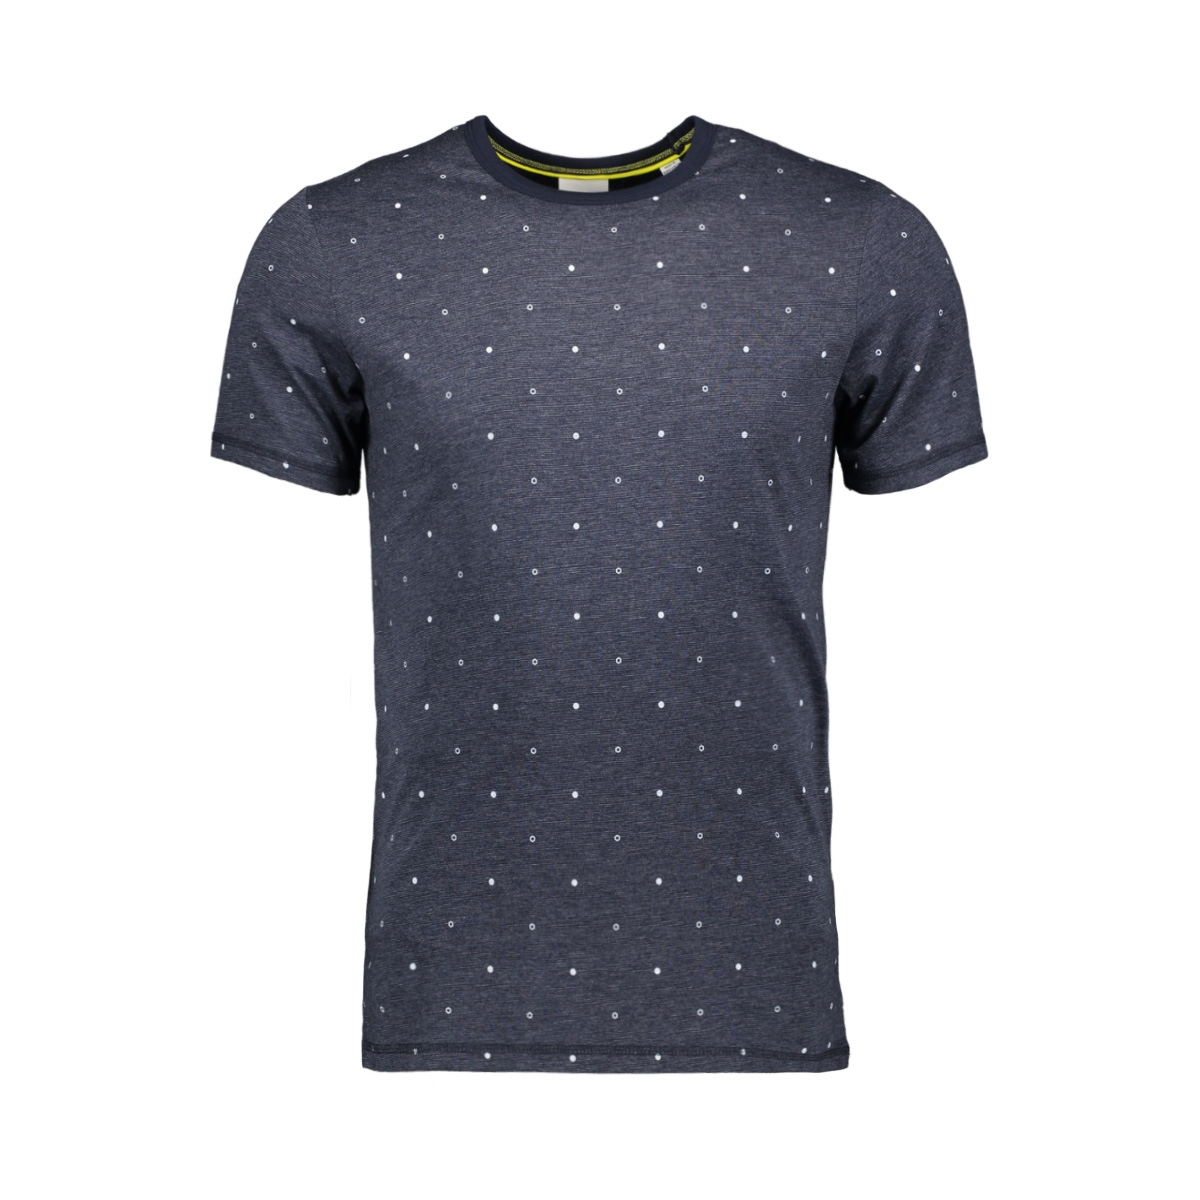 jcohex tee ss crew neck 12159080 jack & jones t-shirt sky captain/mel. slim